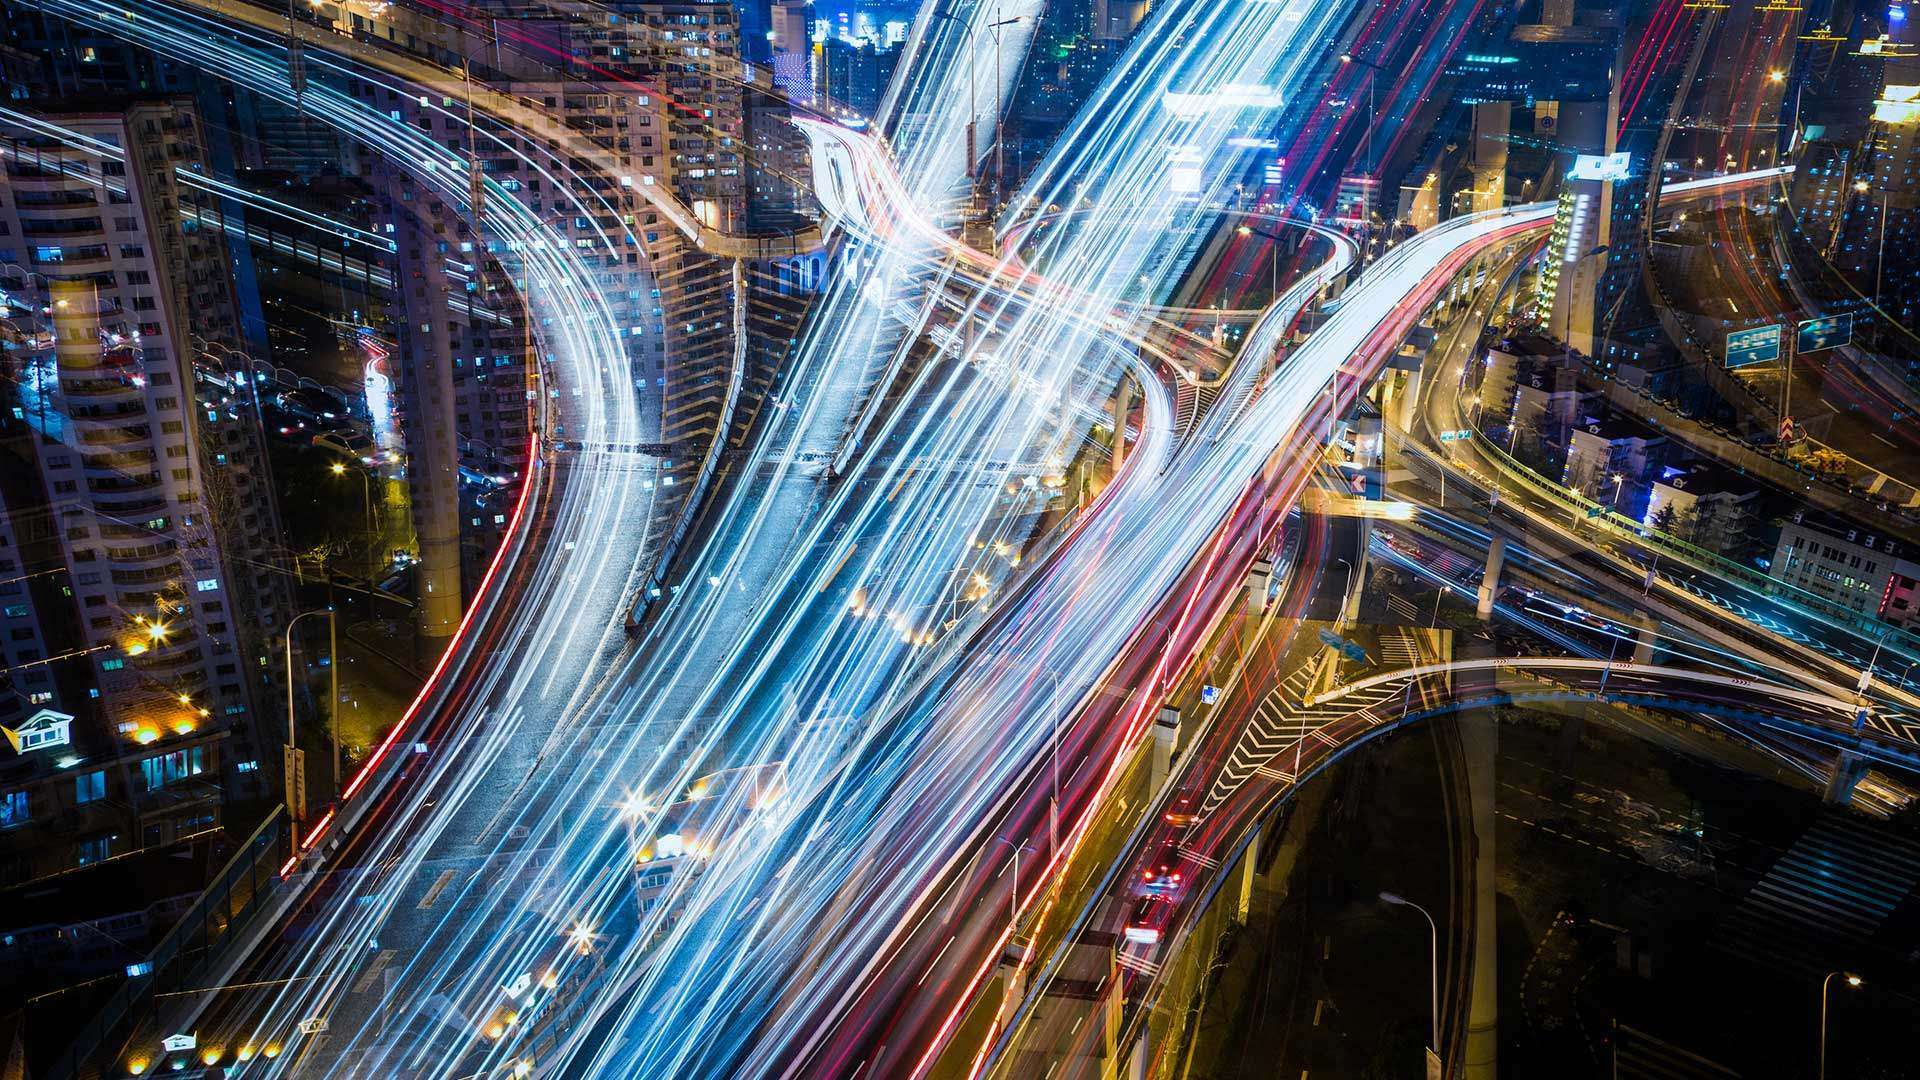 A long exposure photo of automotive traffic in a city at night